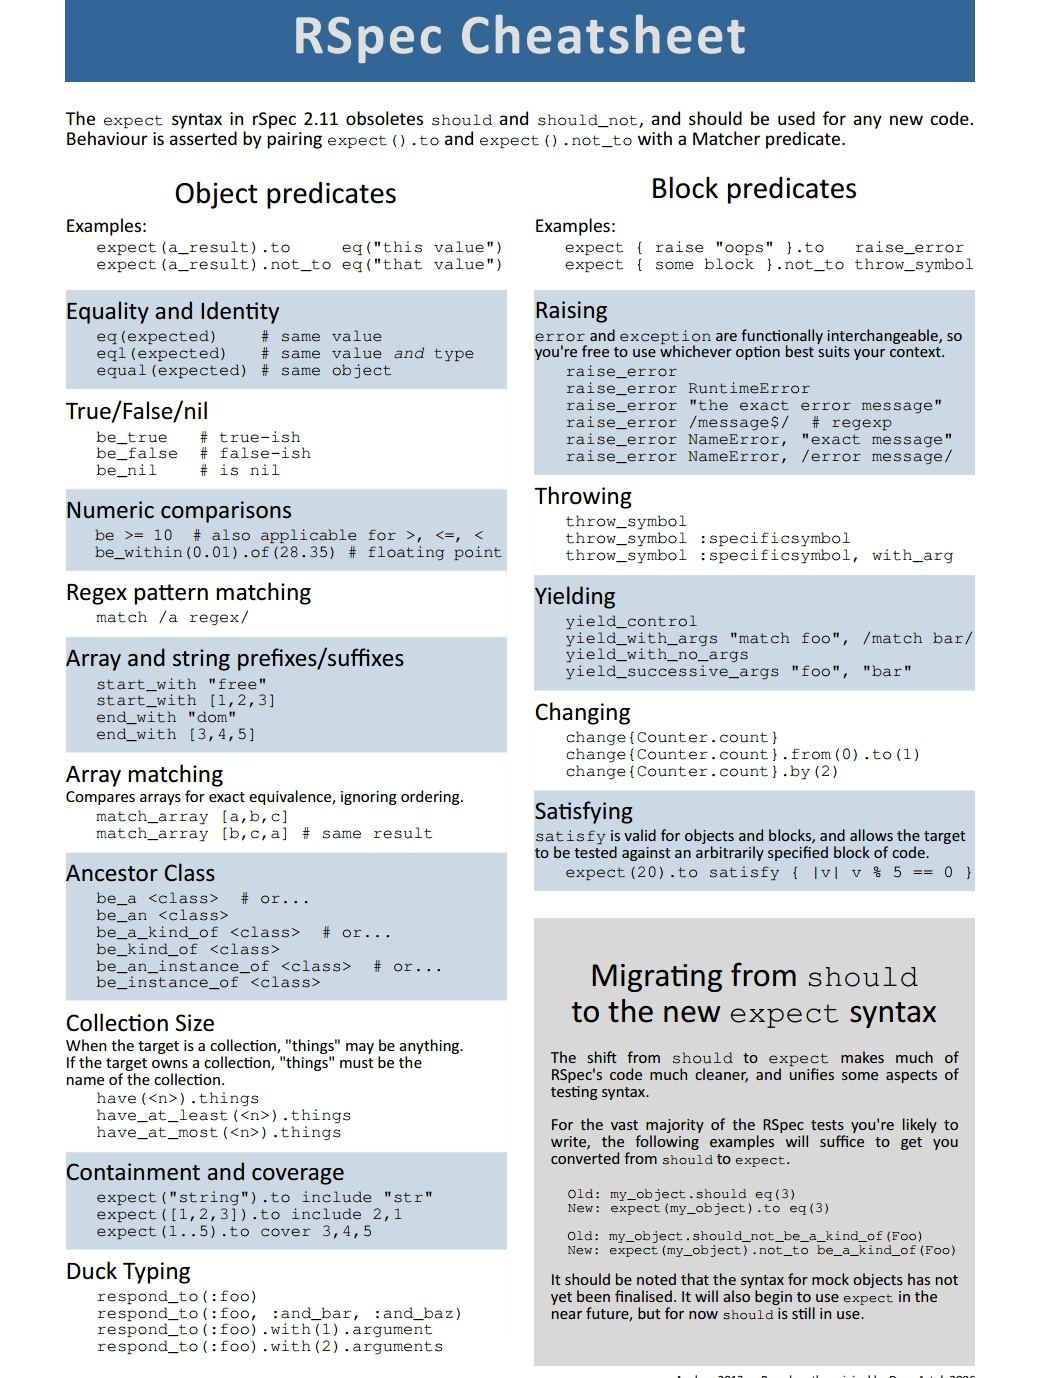 RSpec cheat sheet by Anchor